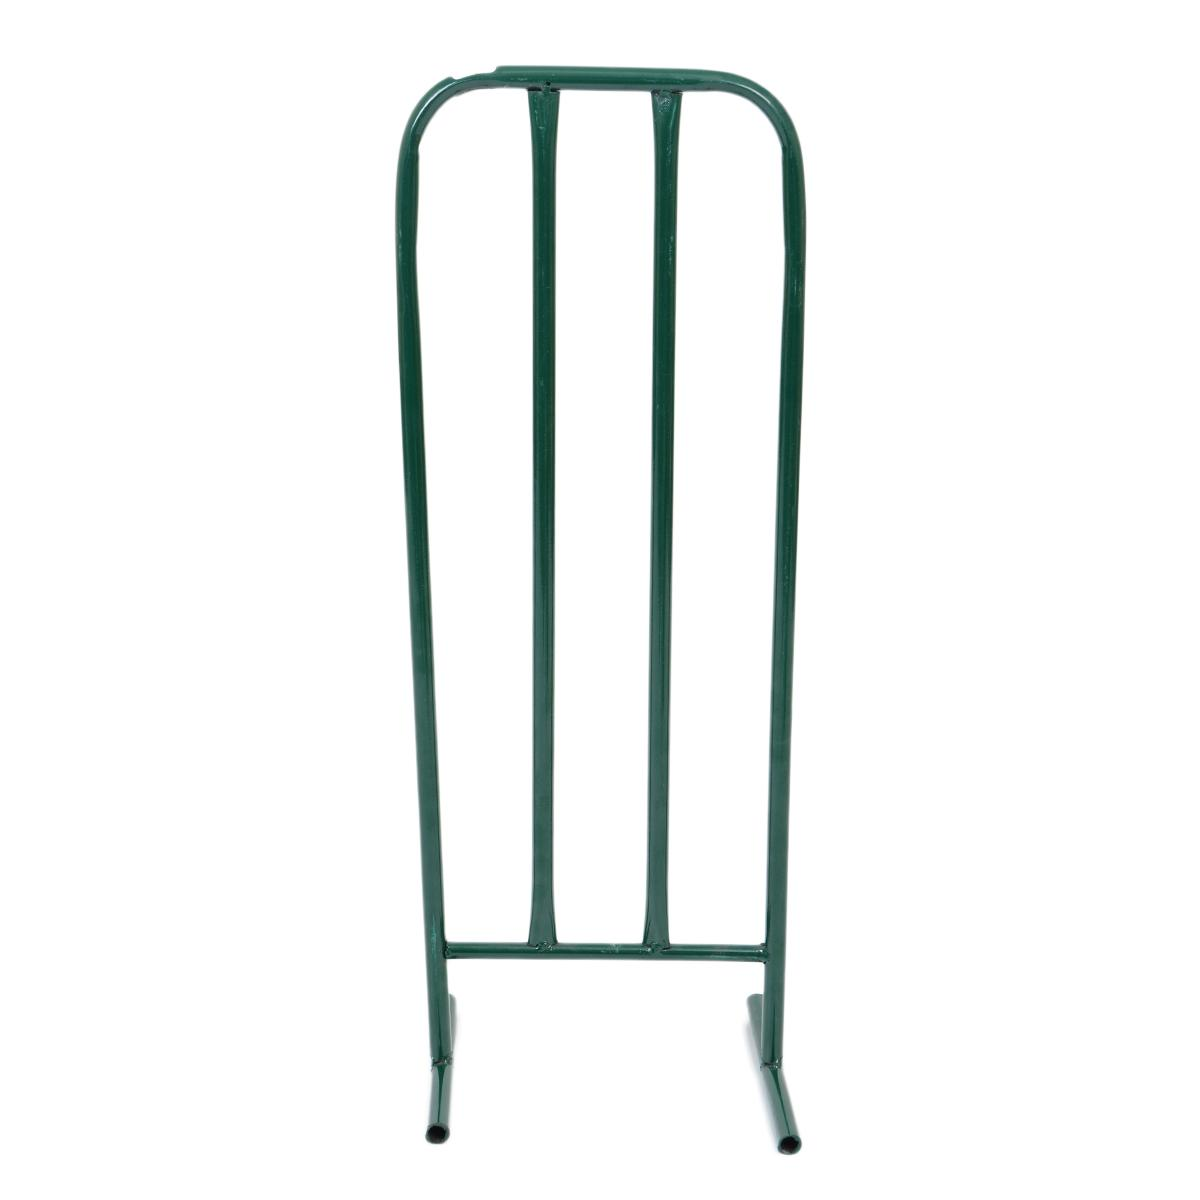 Good Quality Steel Wickets for Tape Ball Cricket (28 Inch Length) - Green